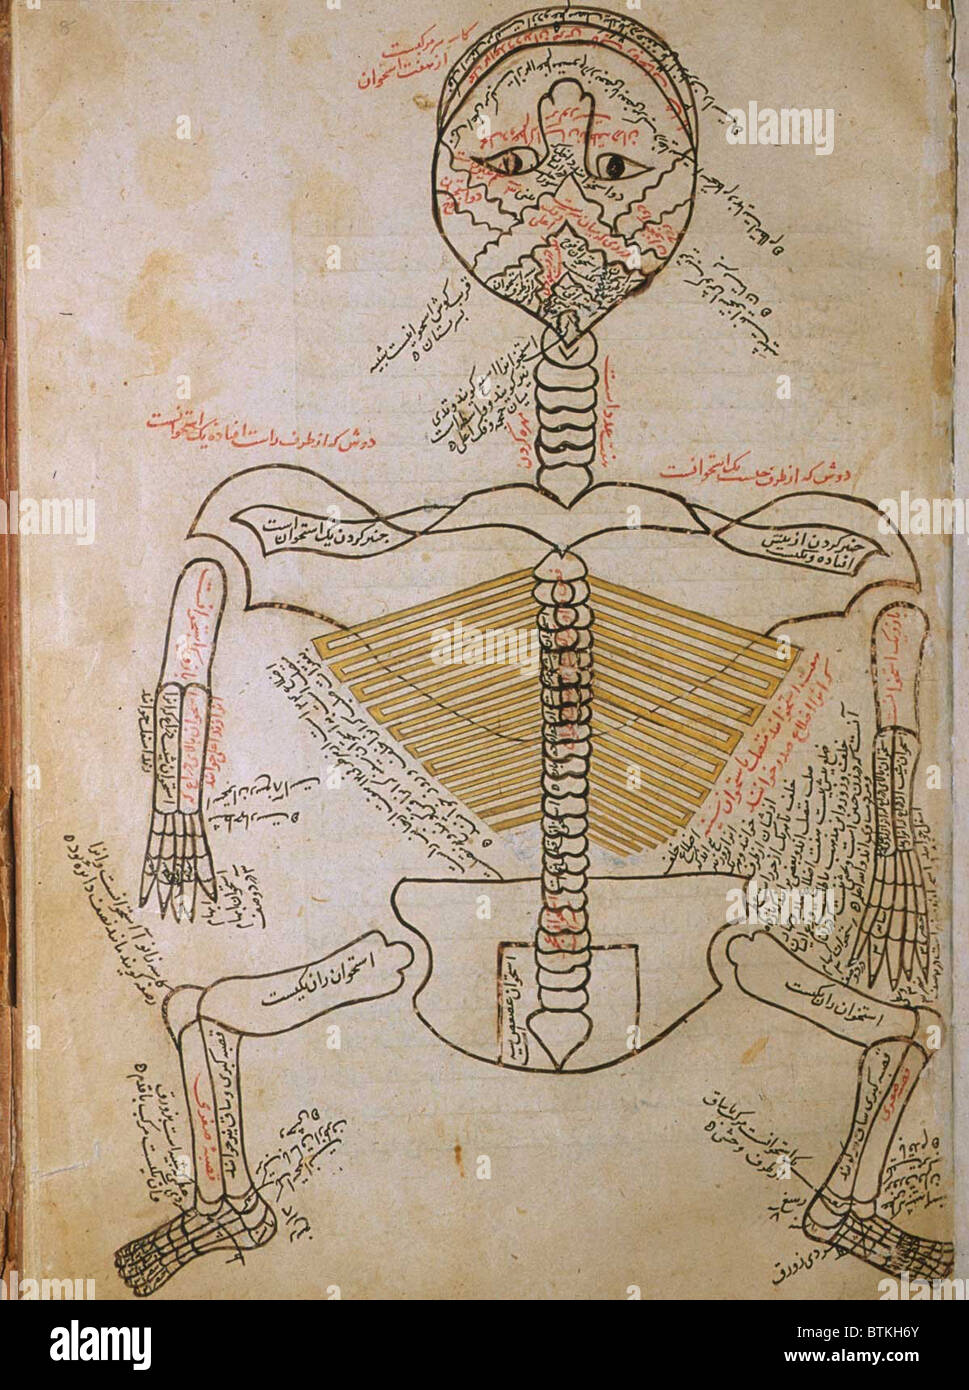 The Human Skeleton From Mansurs Anatomy By The Persian Scholar